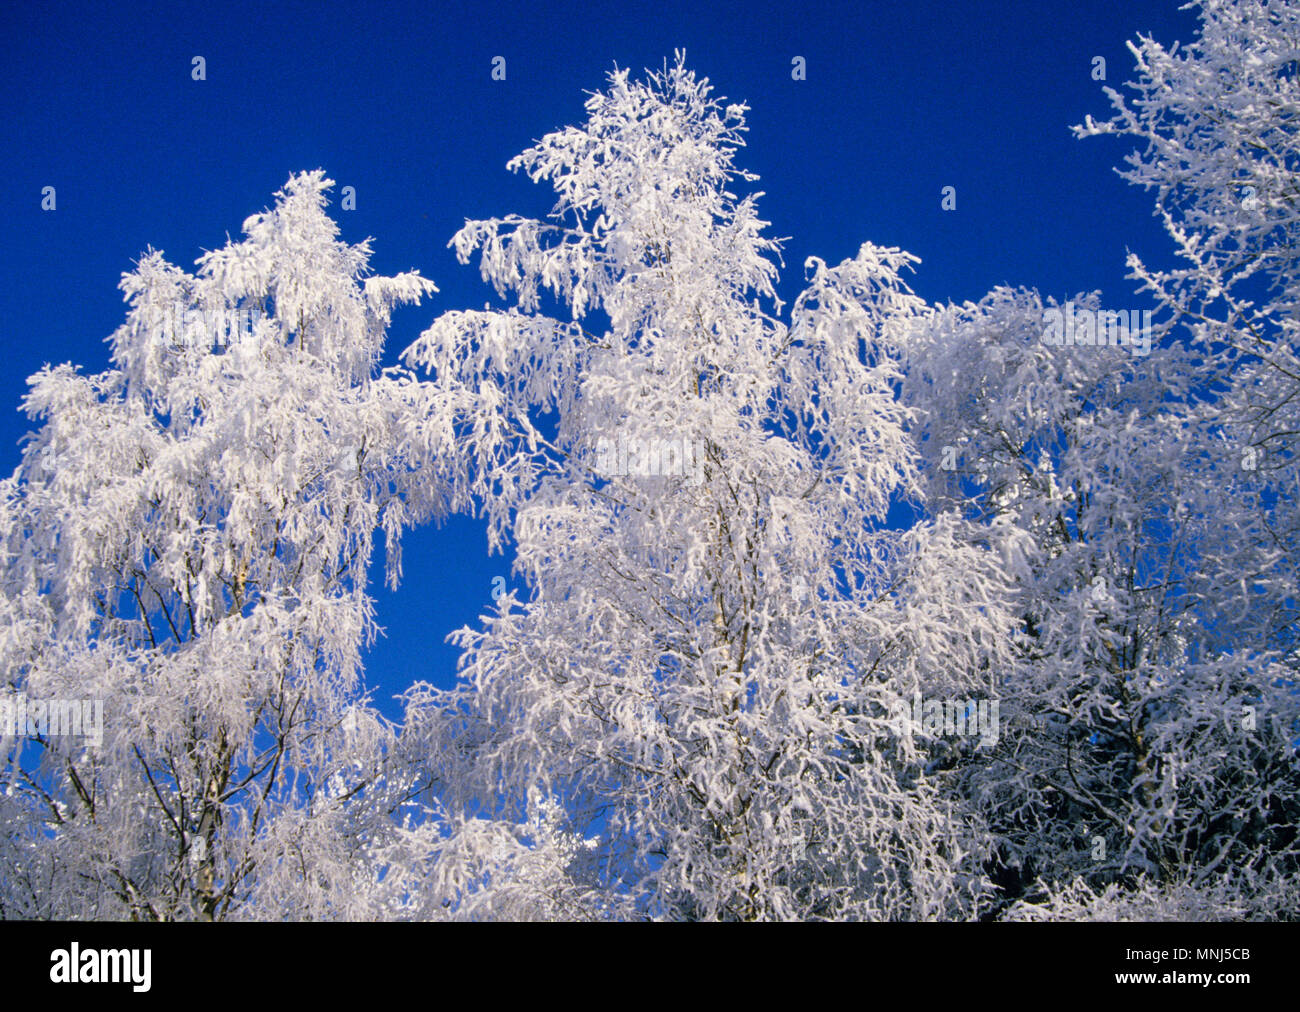 FROST IN TREE against sky 2010 - Stock Image